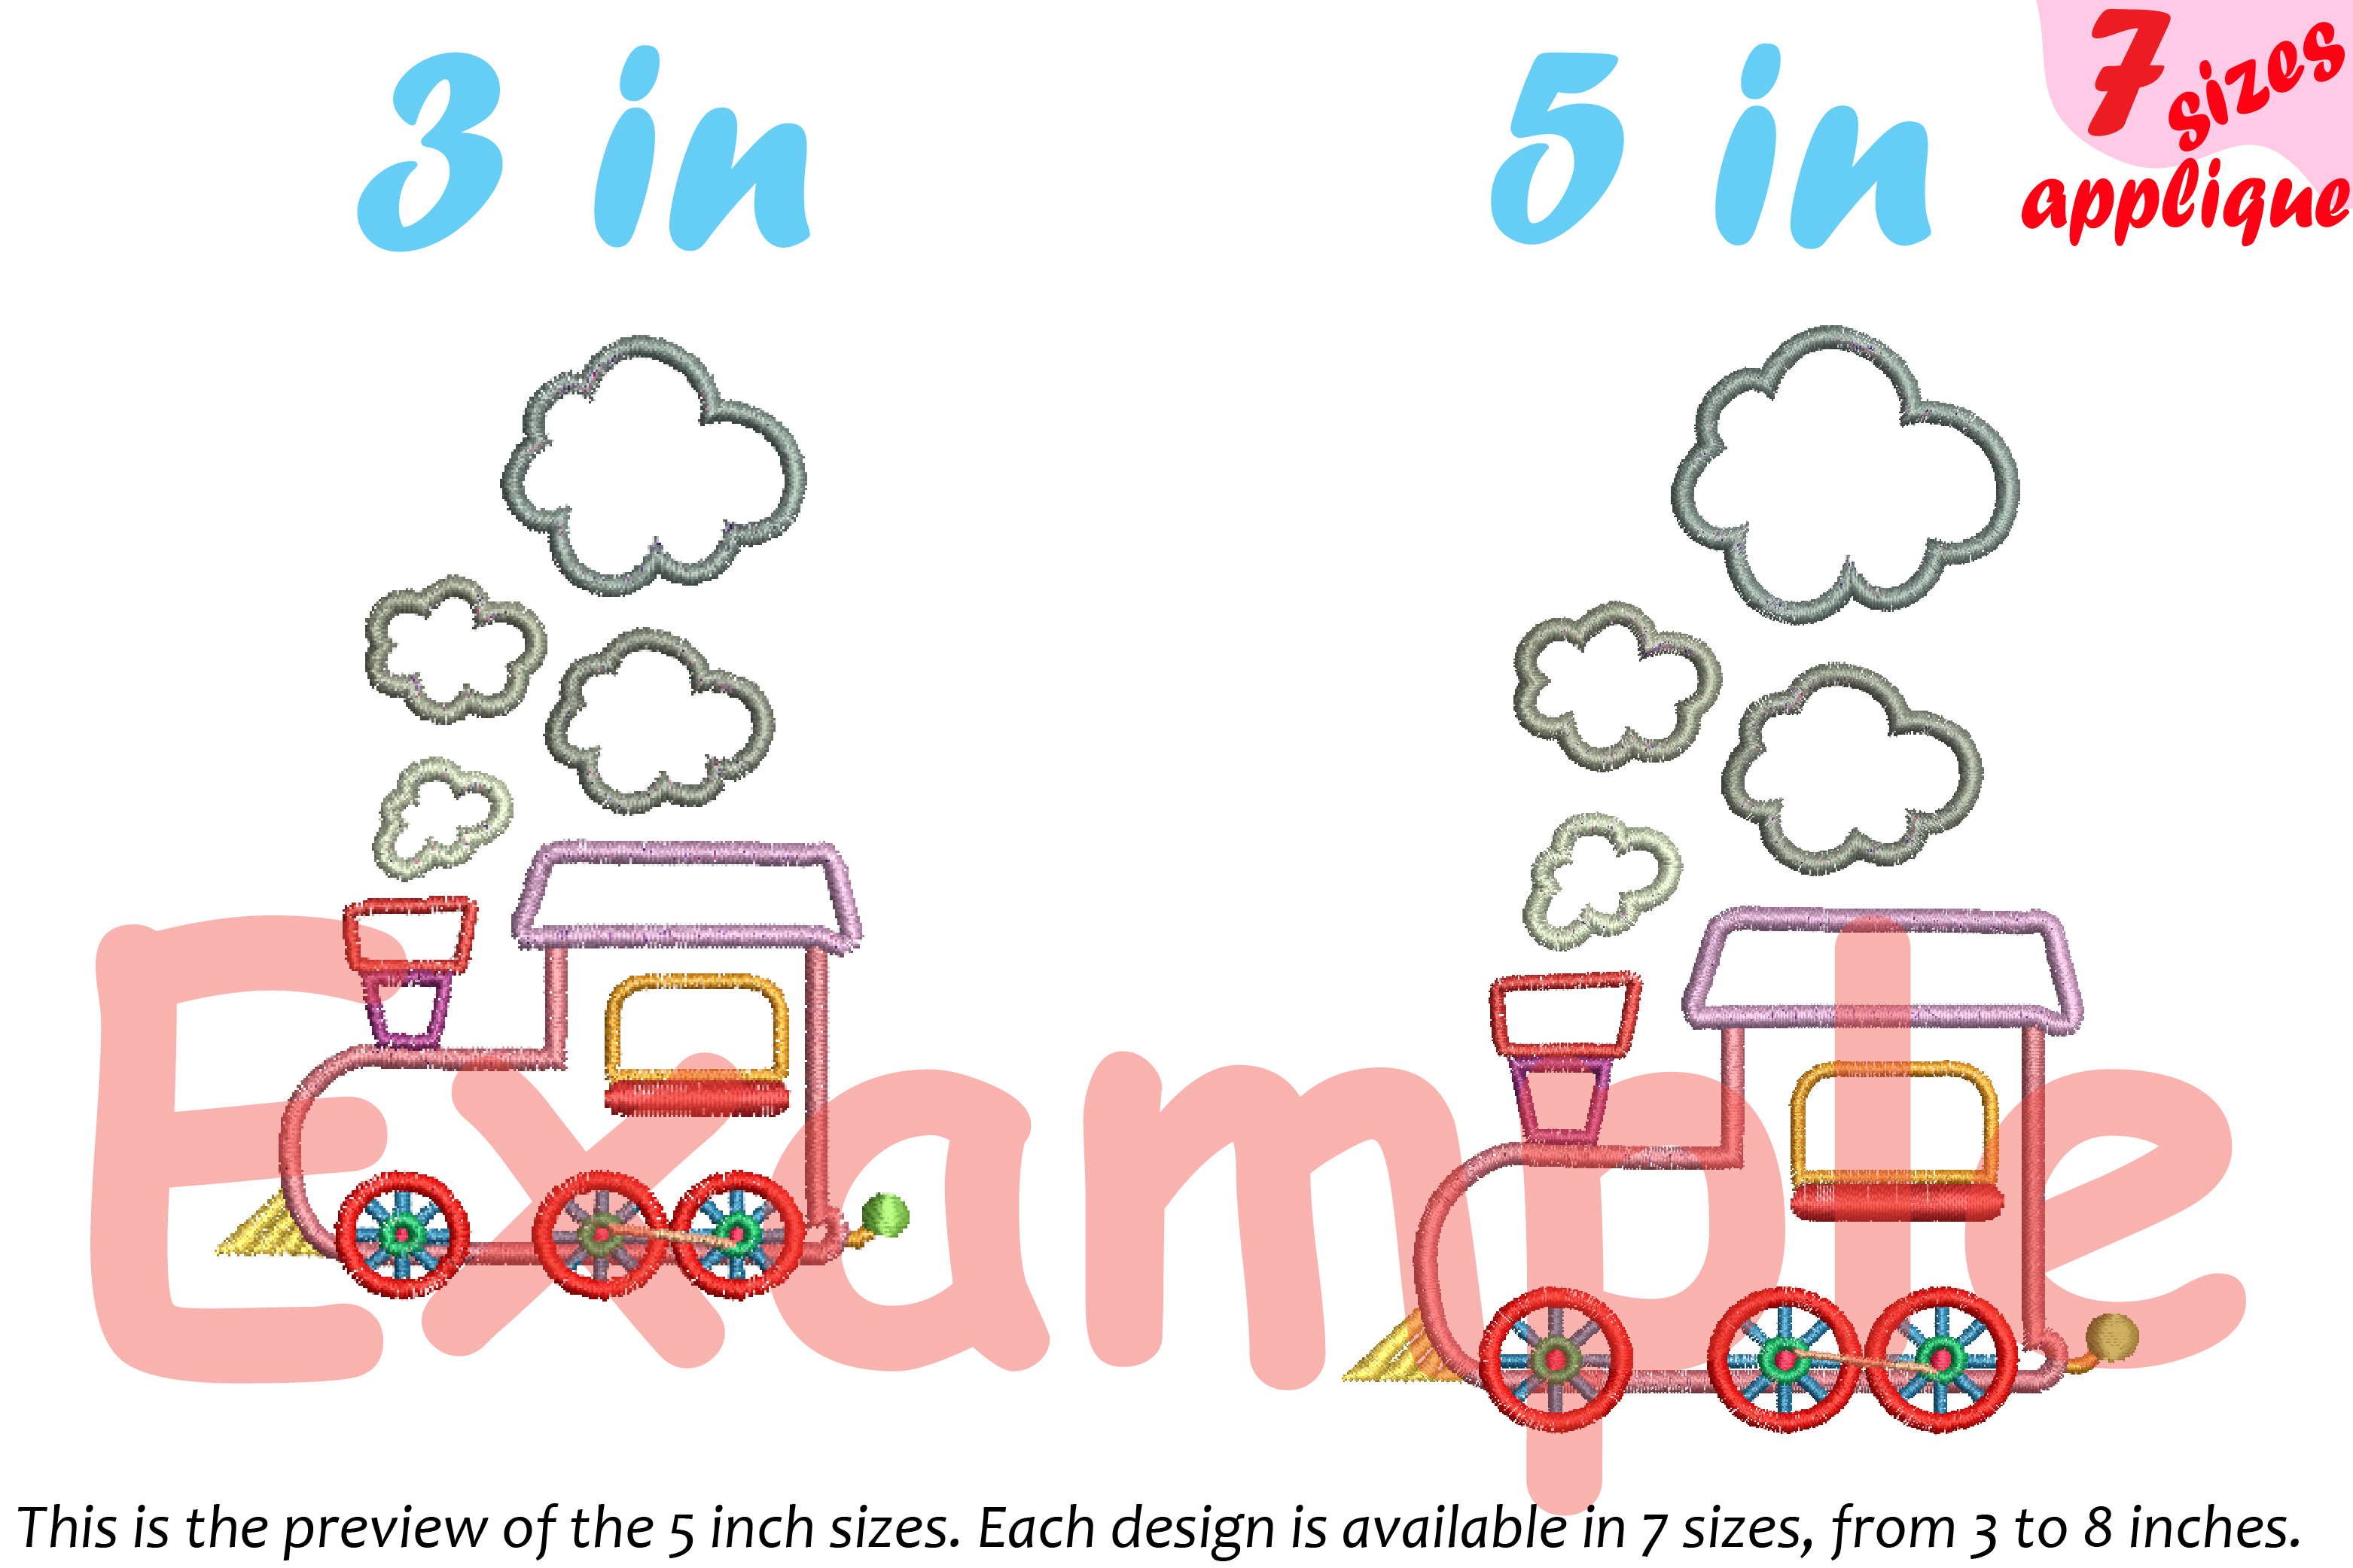 Train Toy Applique Designs for Embroidery Machine Instant Download Commercial Use symbol outline cartoon baby boy Birthday toys 20a example image 4